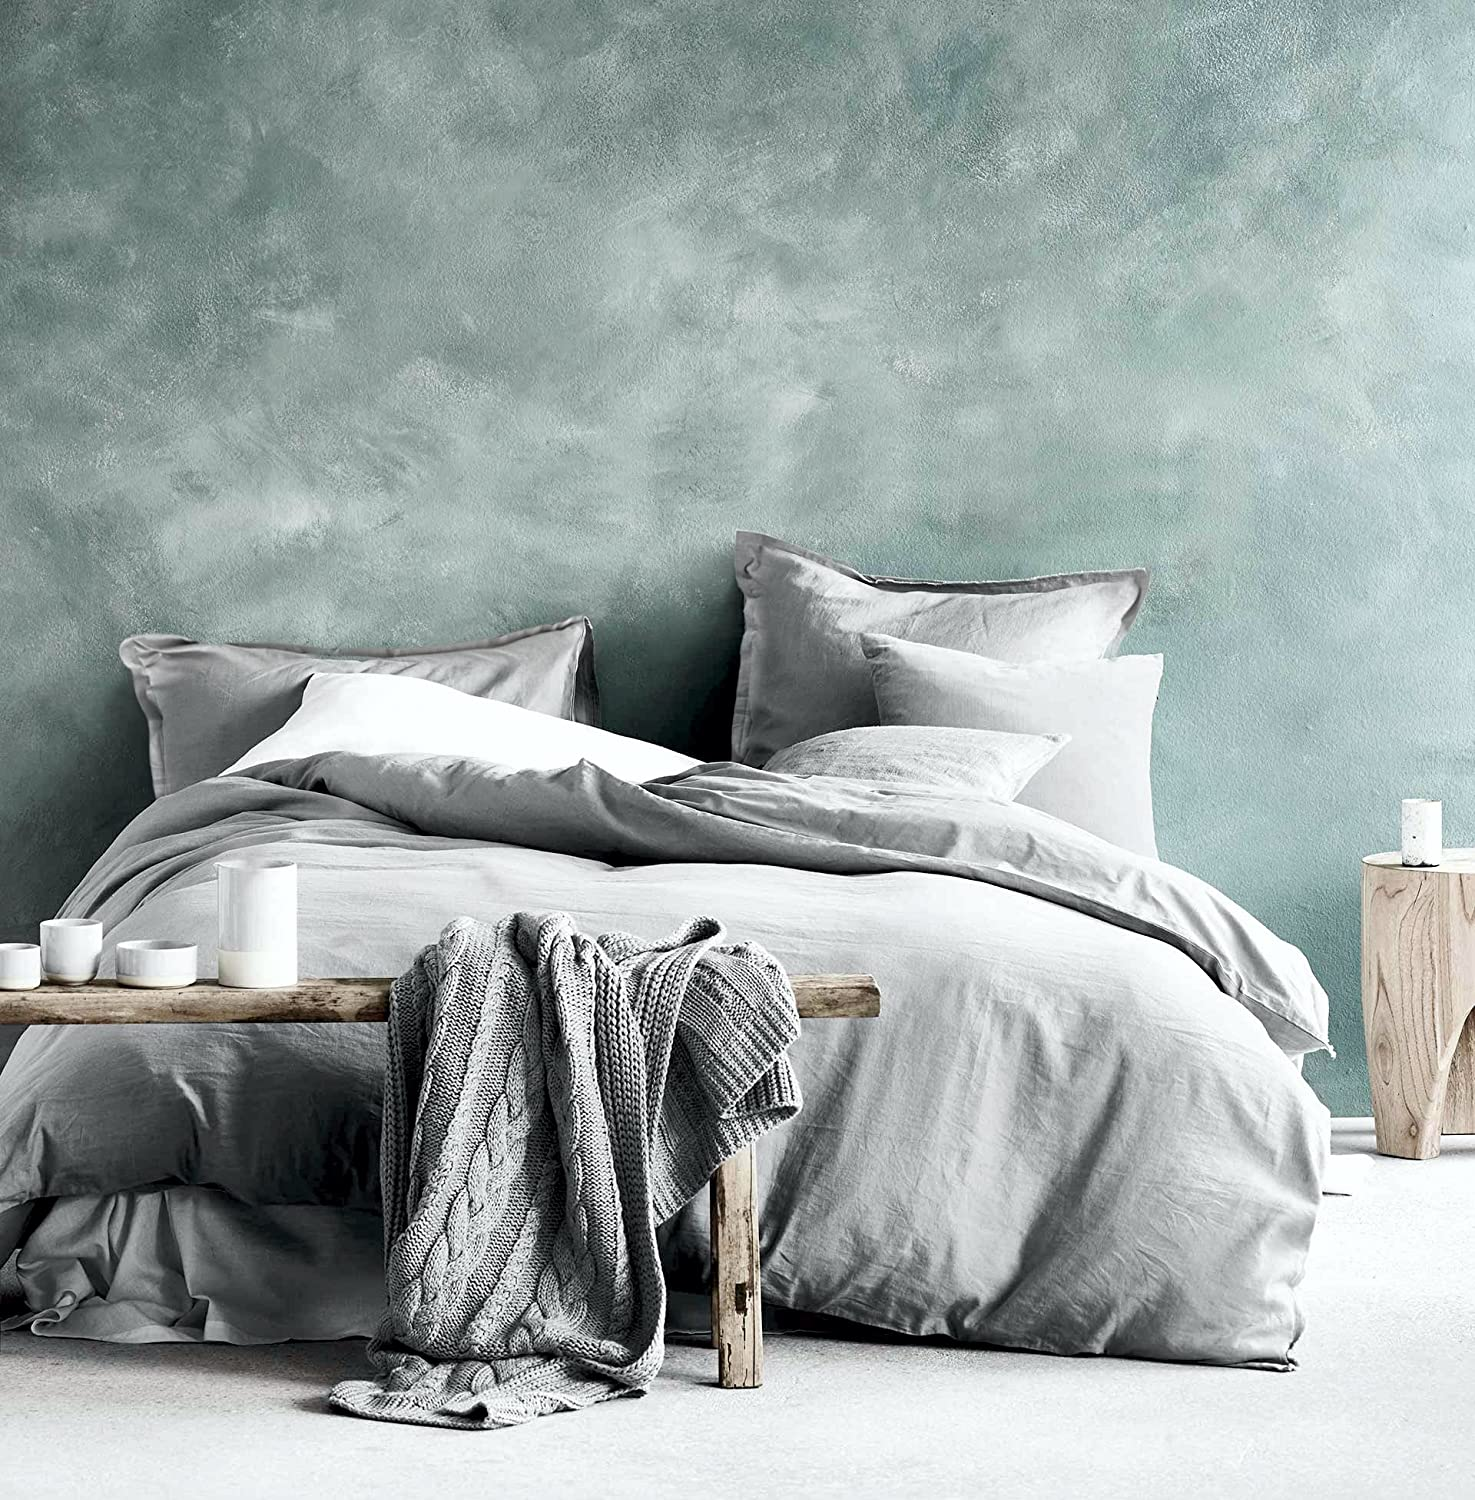 modern unique cover pattern duvet all show grid timeless covers neutral chambray black bed classics